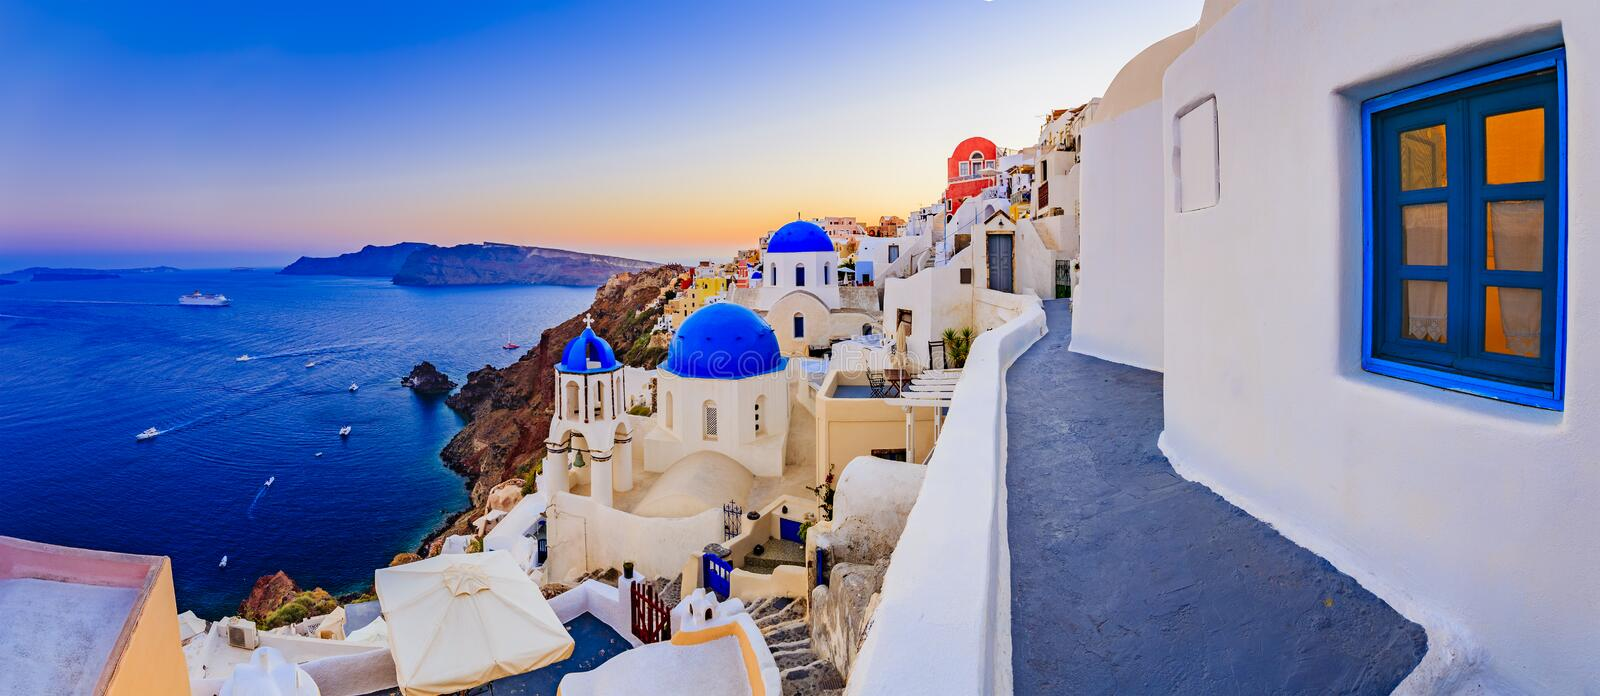 Amazing view with white houses in Oia village. stock photo